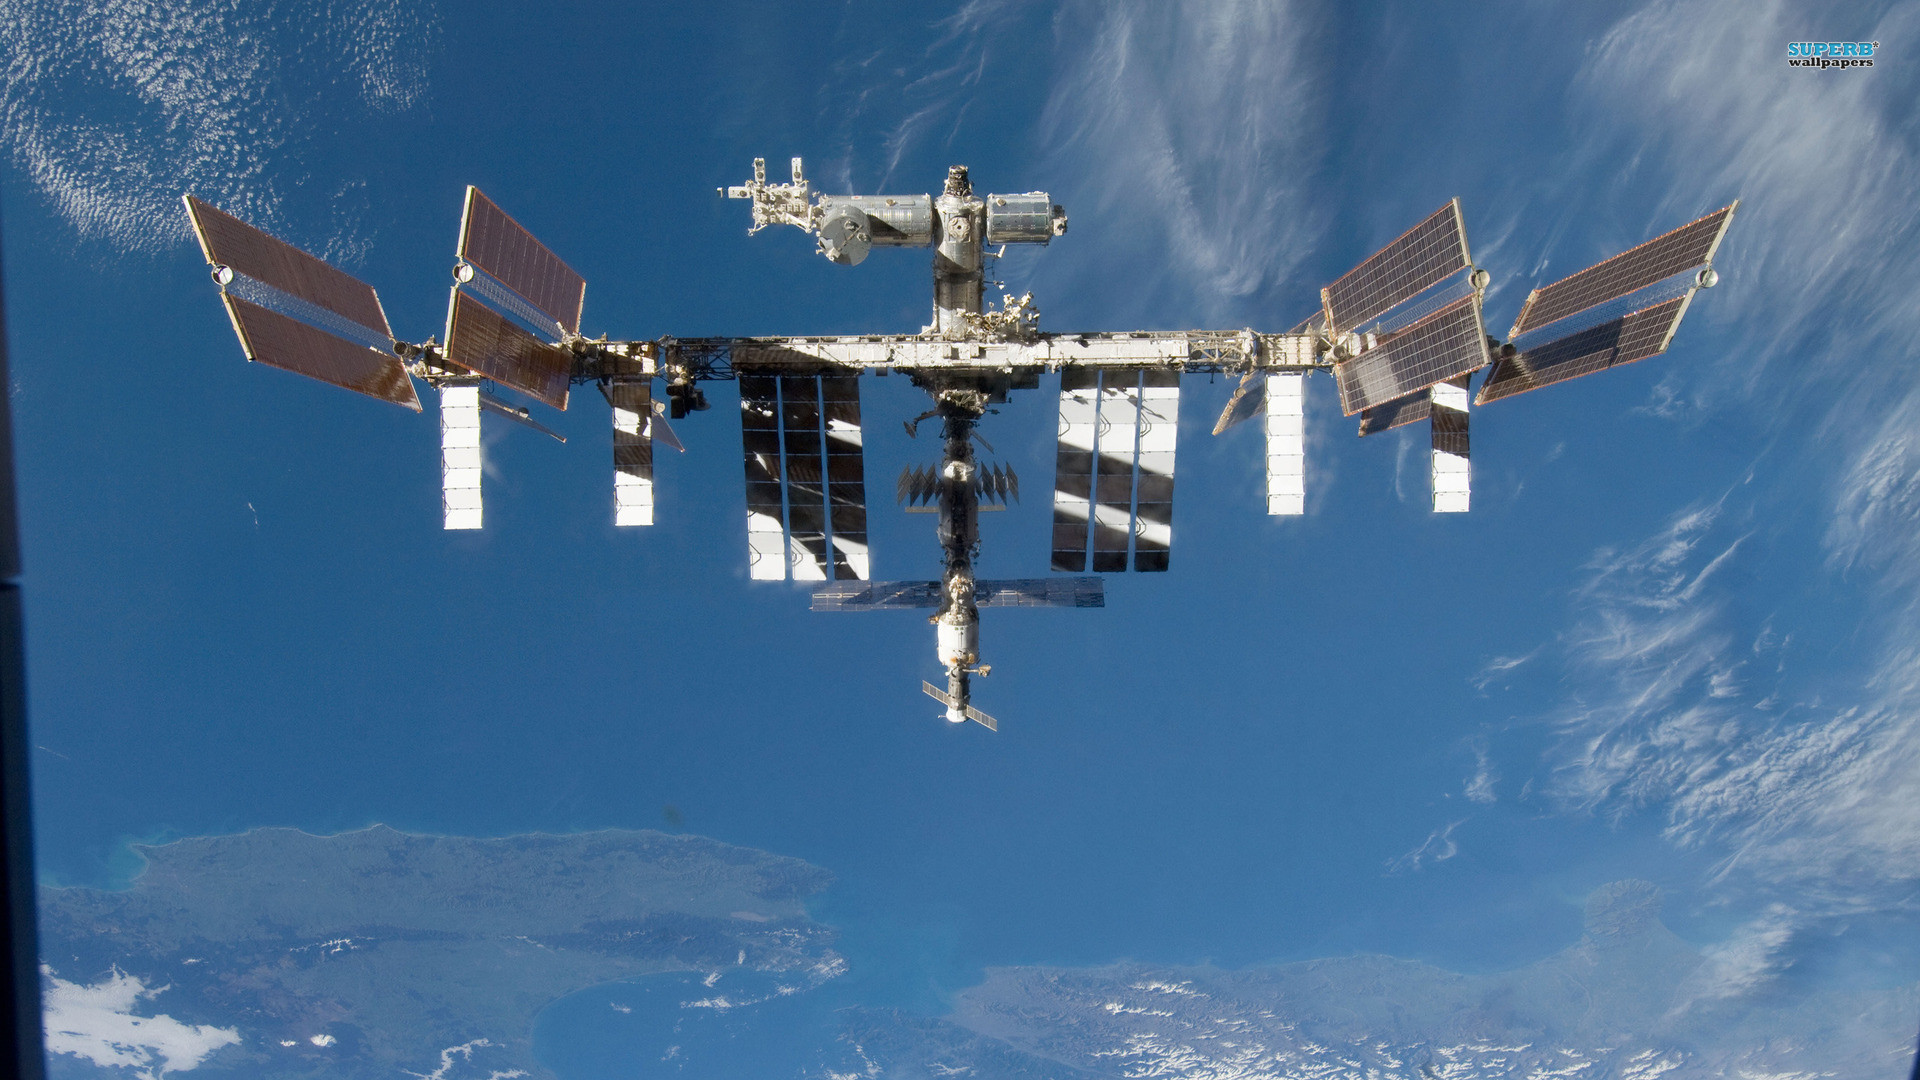 1920x1080 International Space Station HD Wallpaper (page 3) - Pics about space